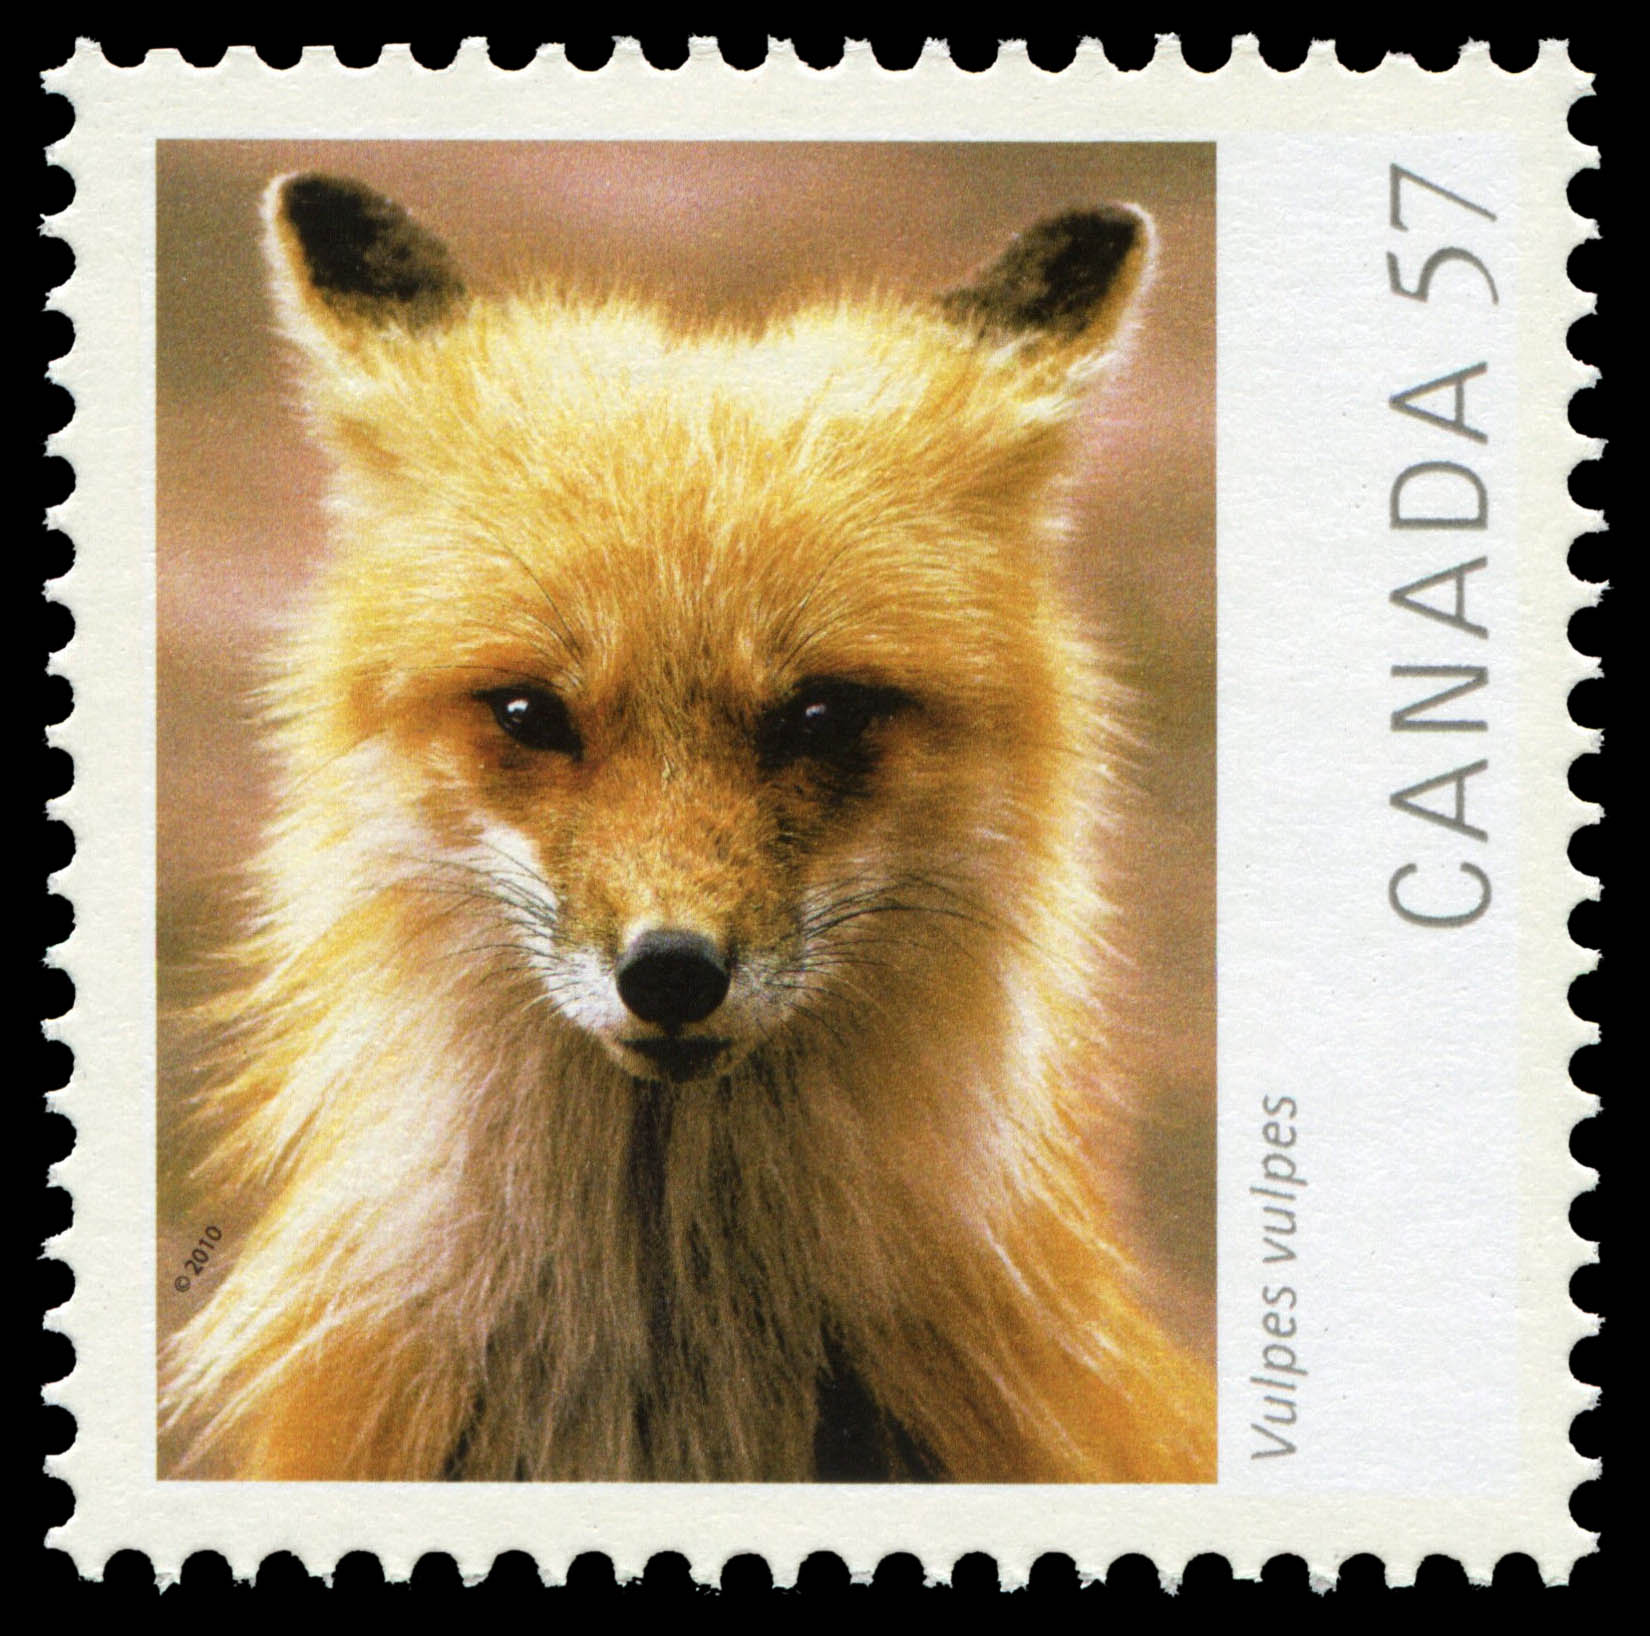 Vulpes vulpes (Red Fox) Canada Postage Stamp | Canadian Geographic's Wildlife Photography of the Year